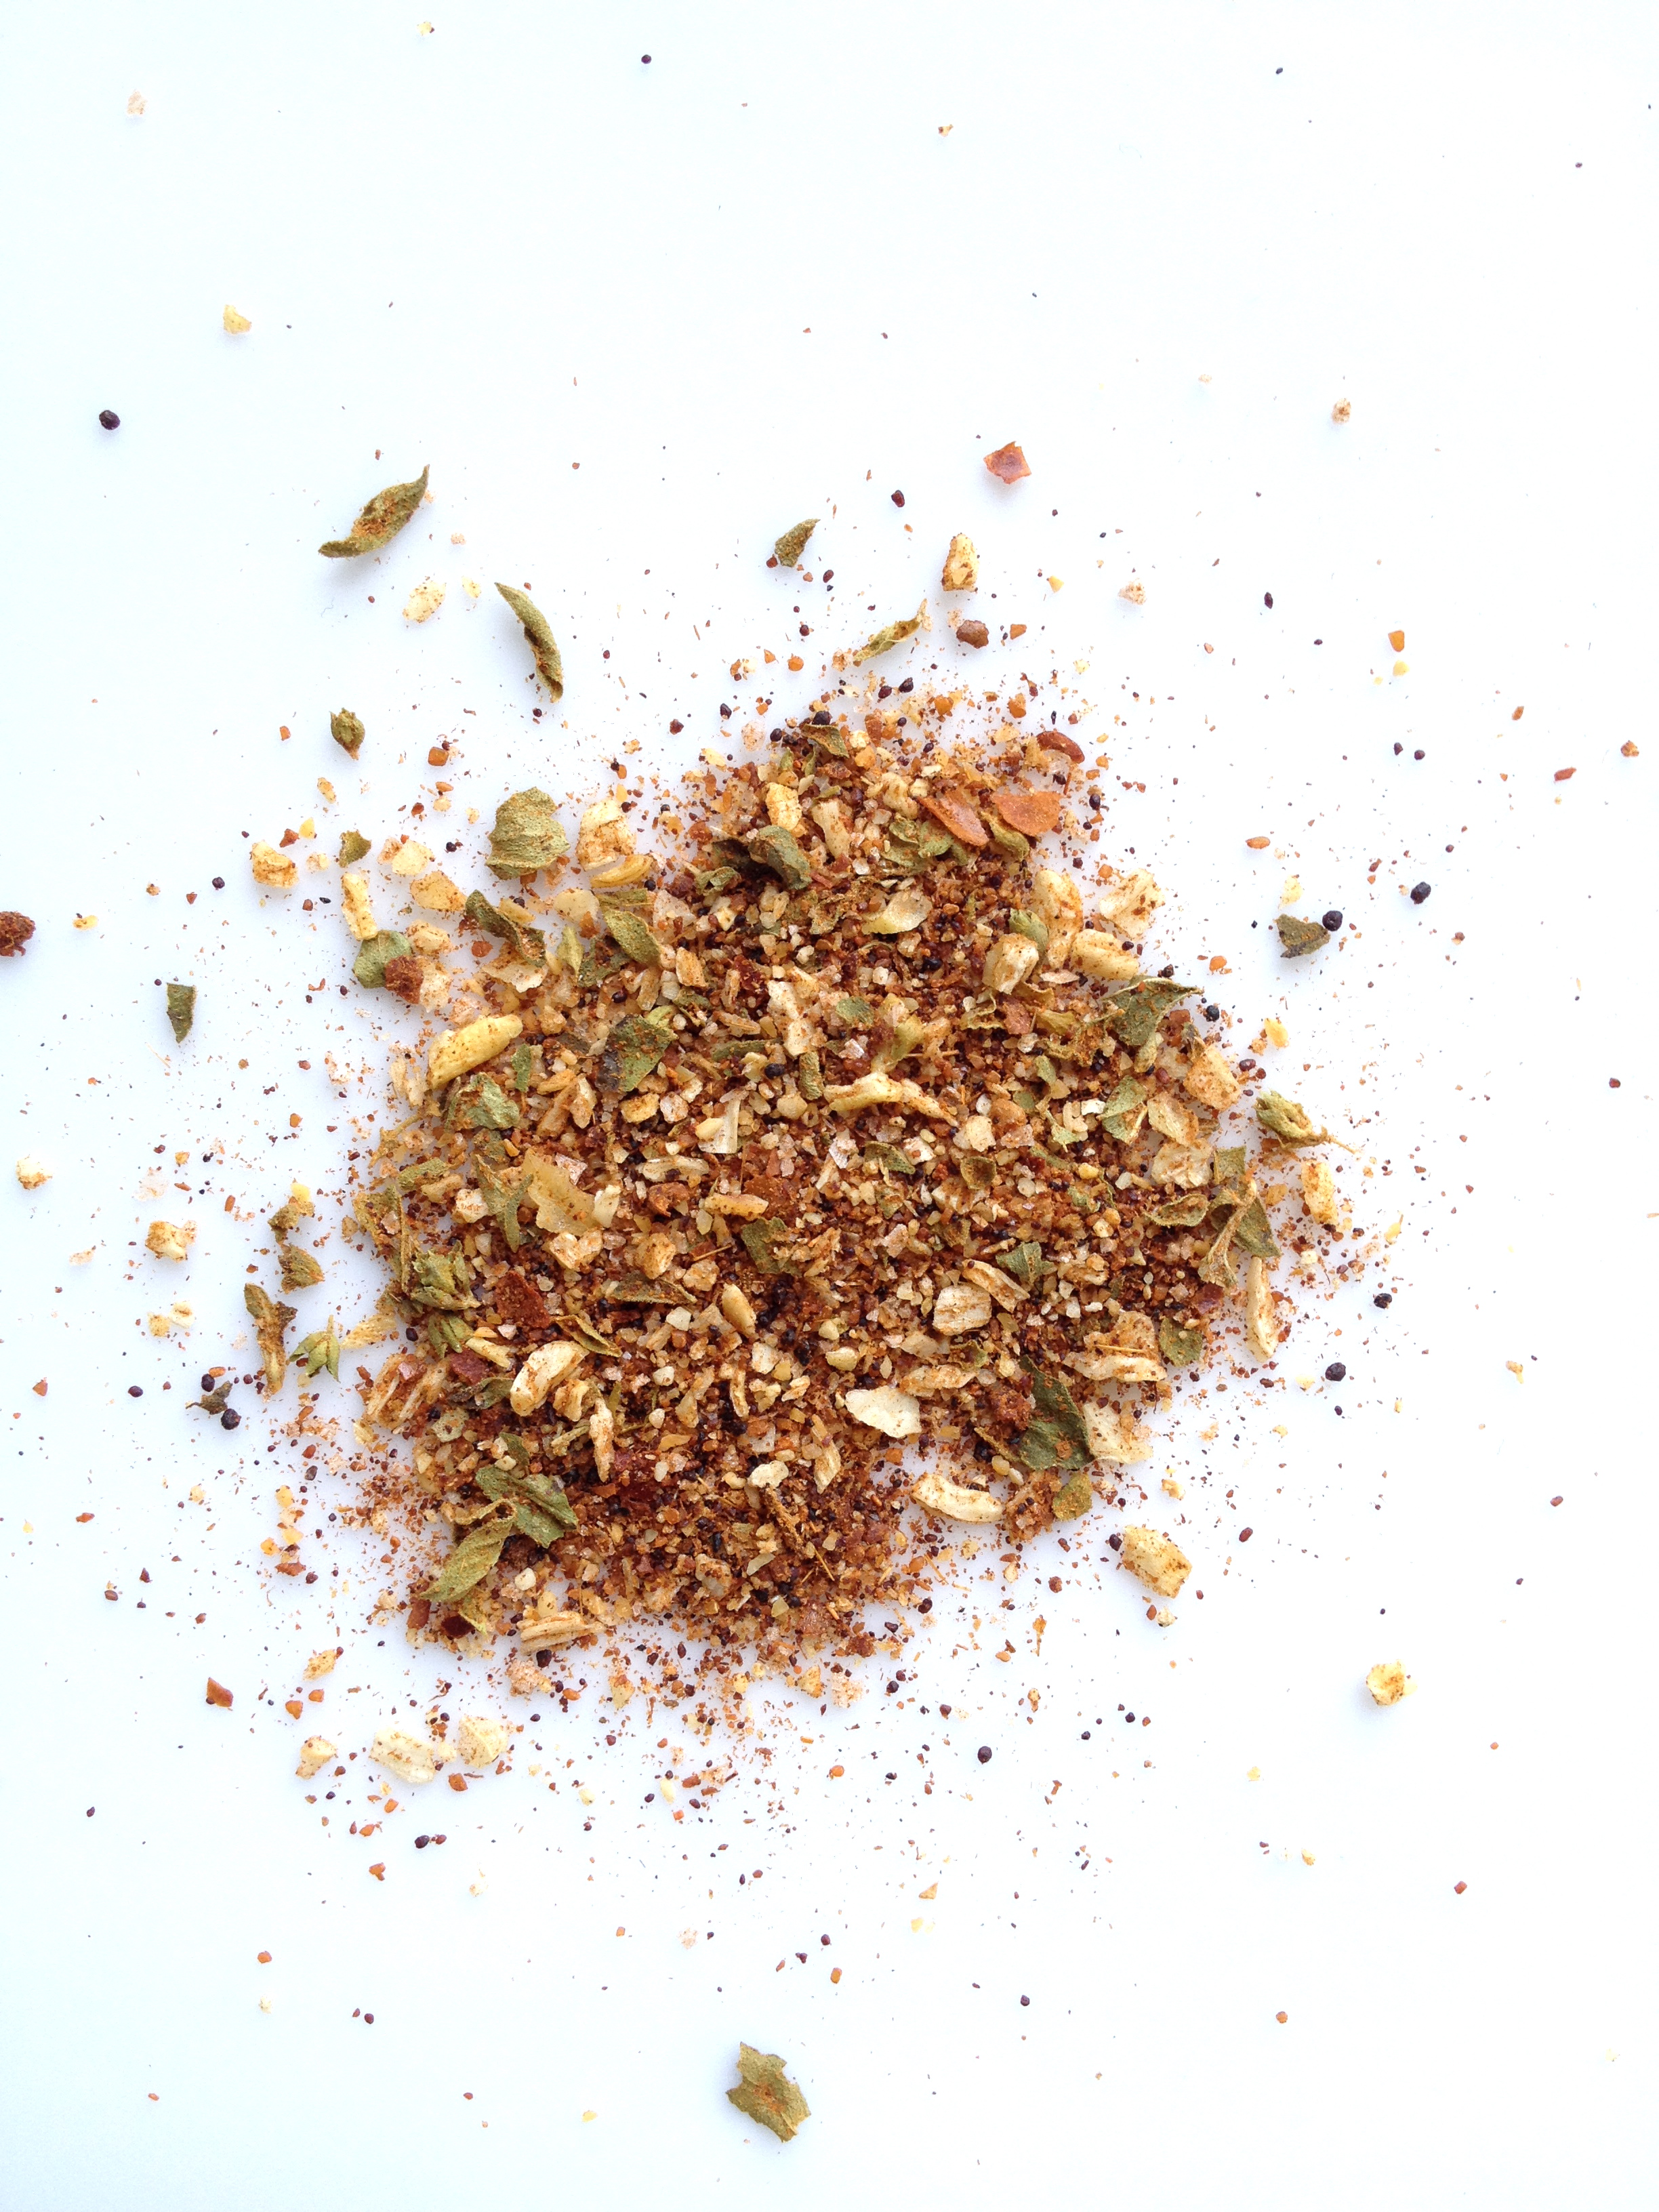 ZESTY SOUTHWEST RUB